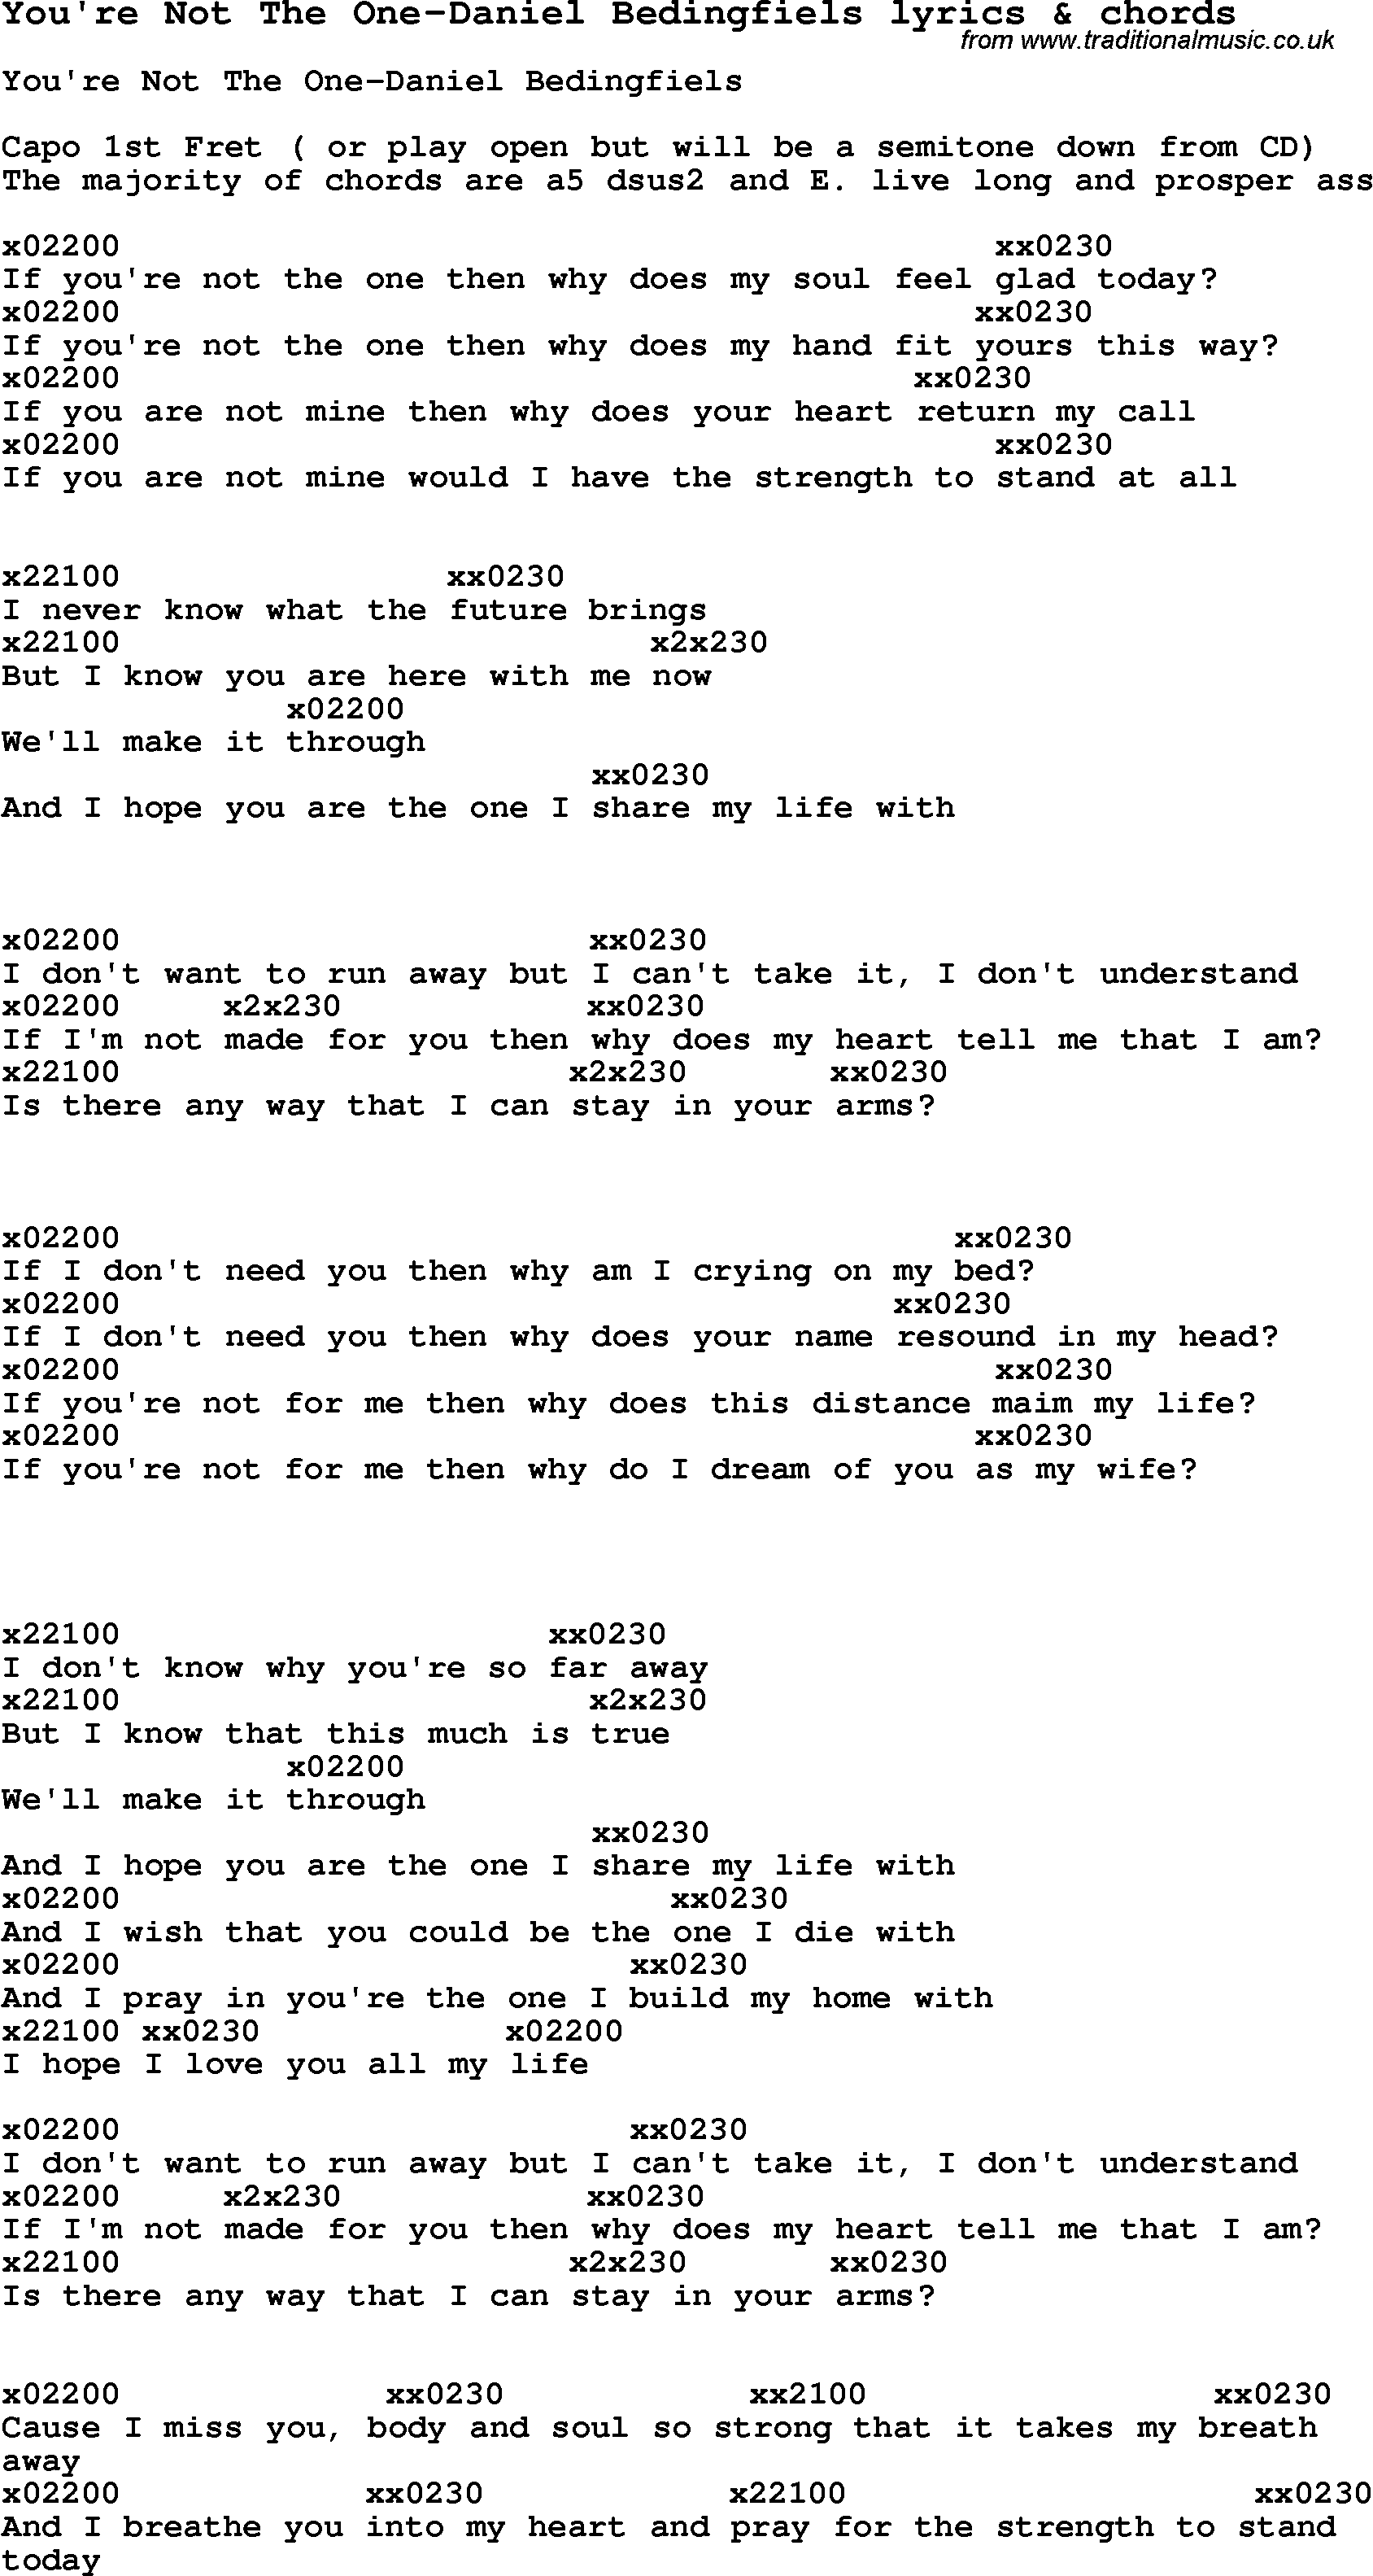 Love Song Lyrics Foryoure Not The One Daniel Bedingfiels With Chords